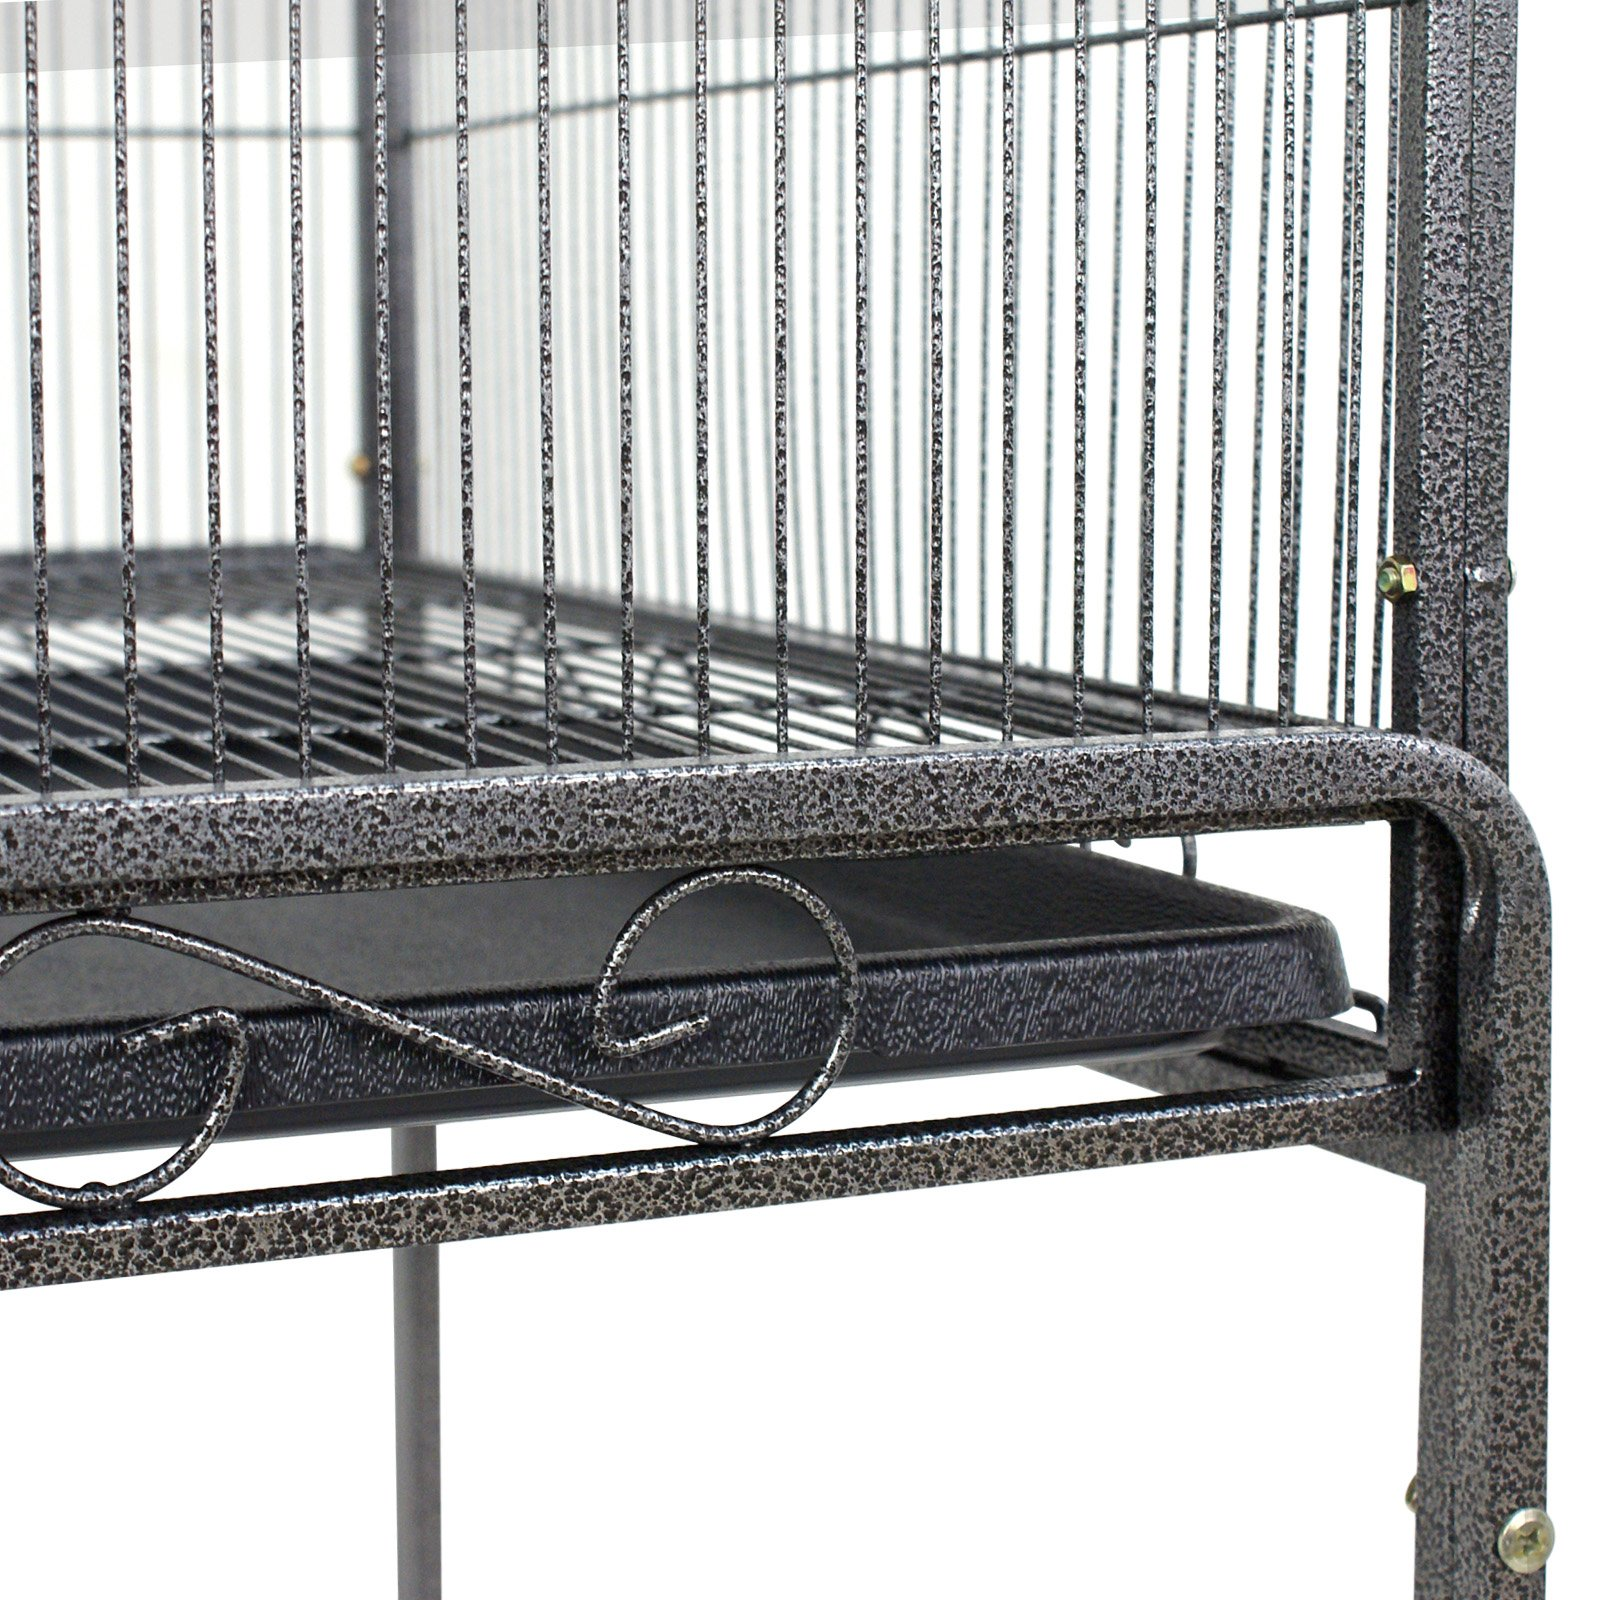 Super Deal 53''/61''/68'' Large Bird Cage Play Top Parrot Chinchilla Cage Macaw Cockatiel Cockatoo Pet House, 53 inch by SuperDealUsa (Image #5)